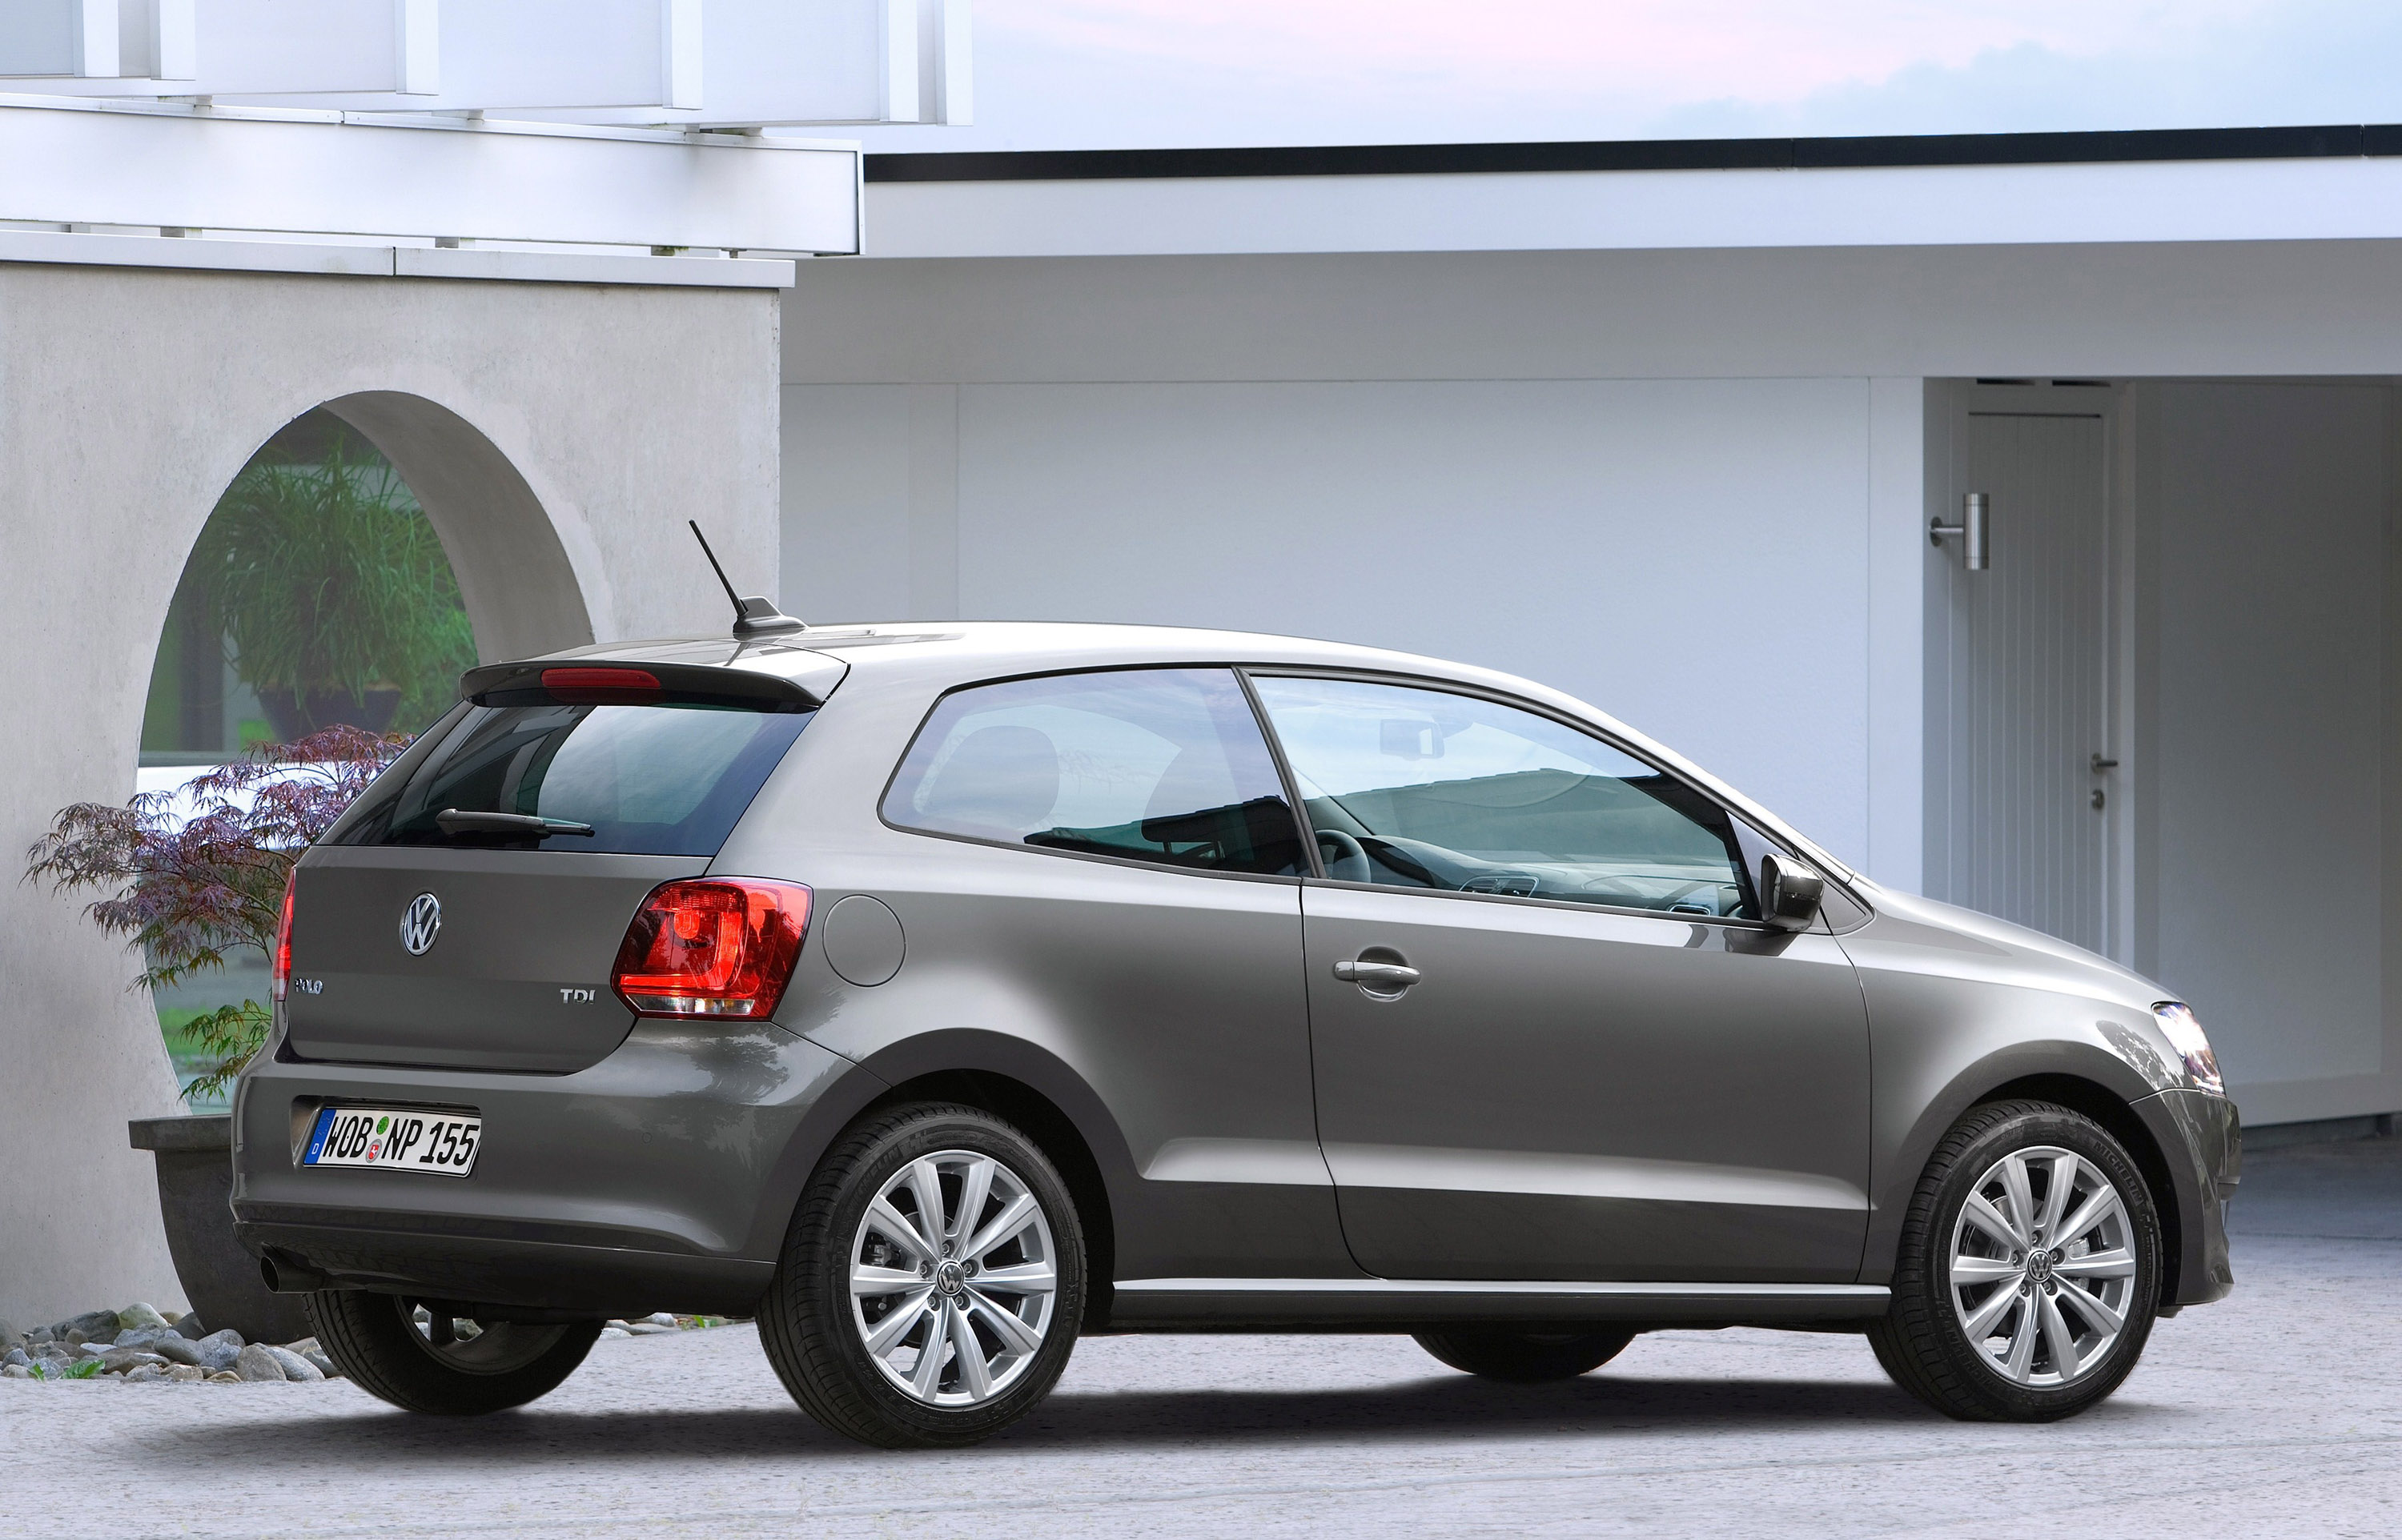 Volkswagen S 1 2 Tsi Engine Is Now Available For Polo